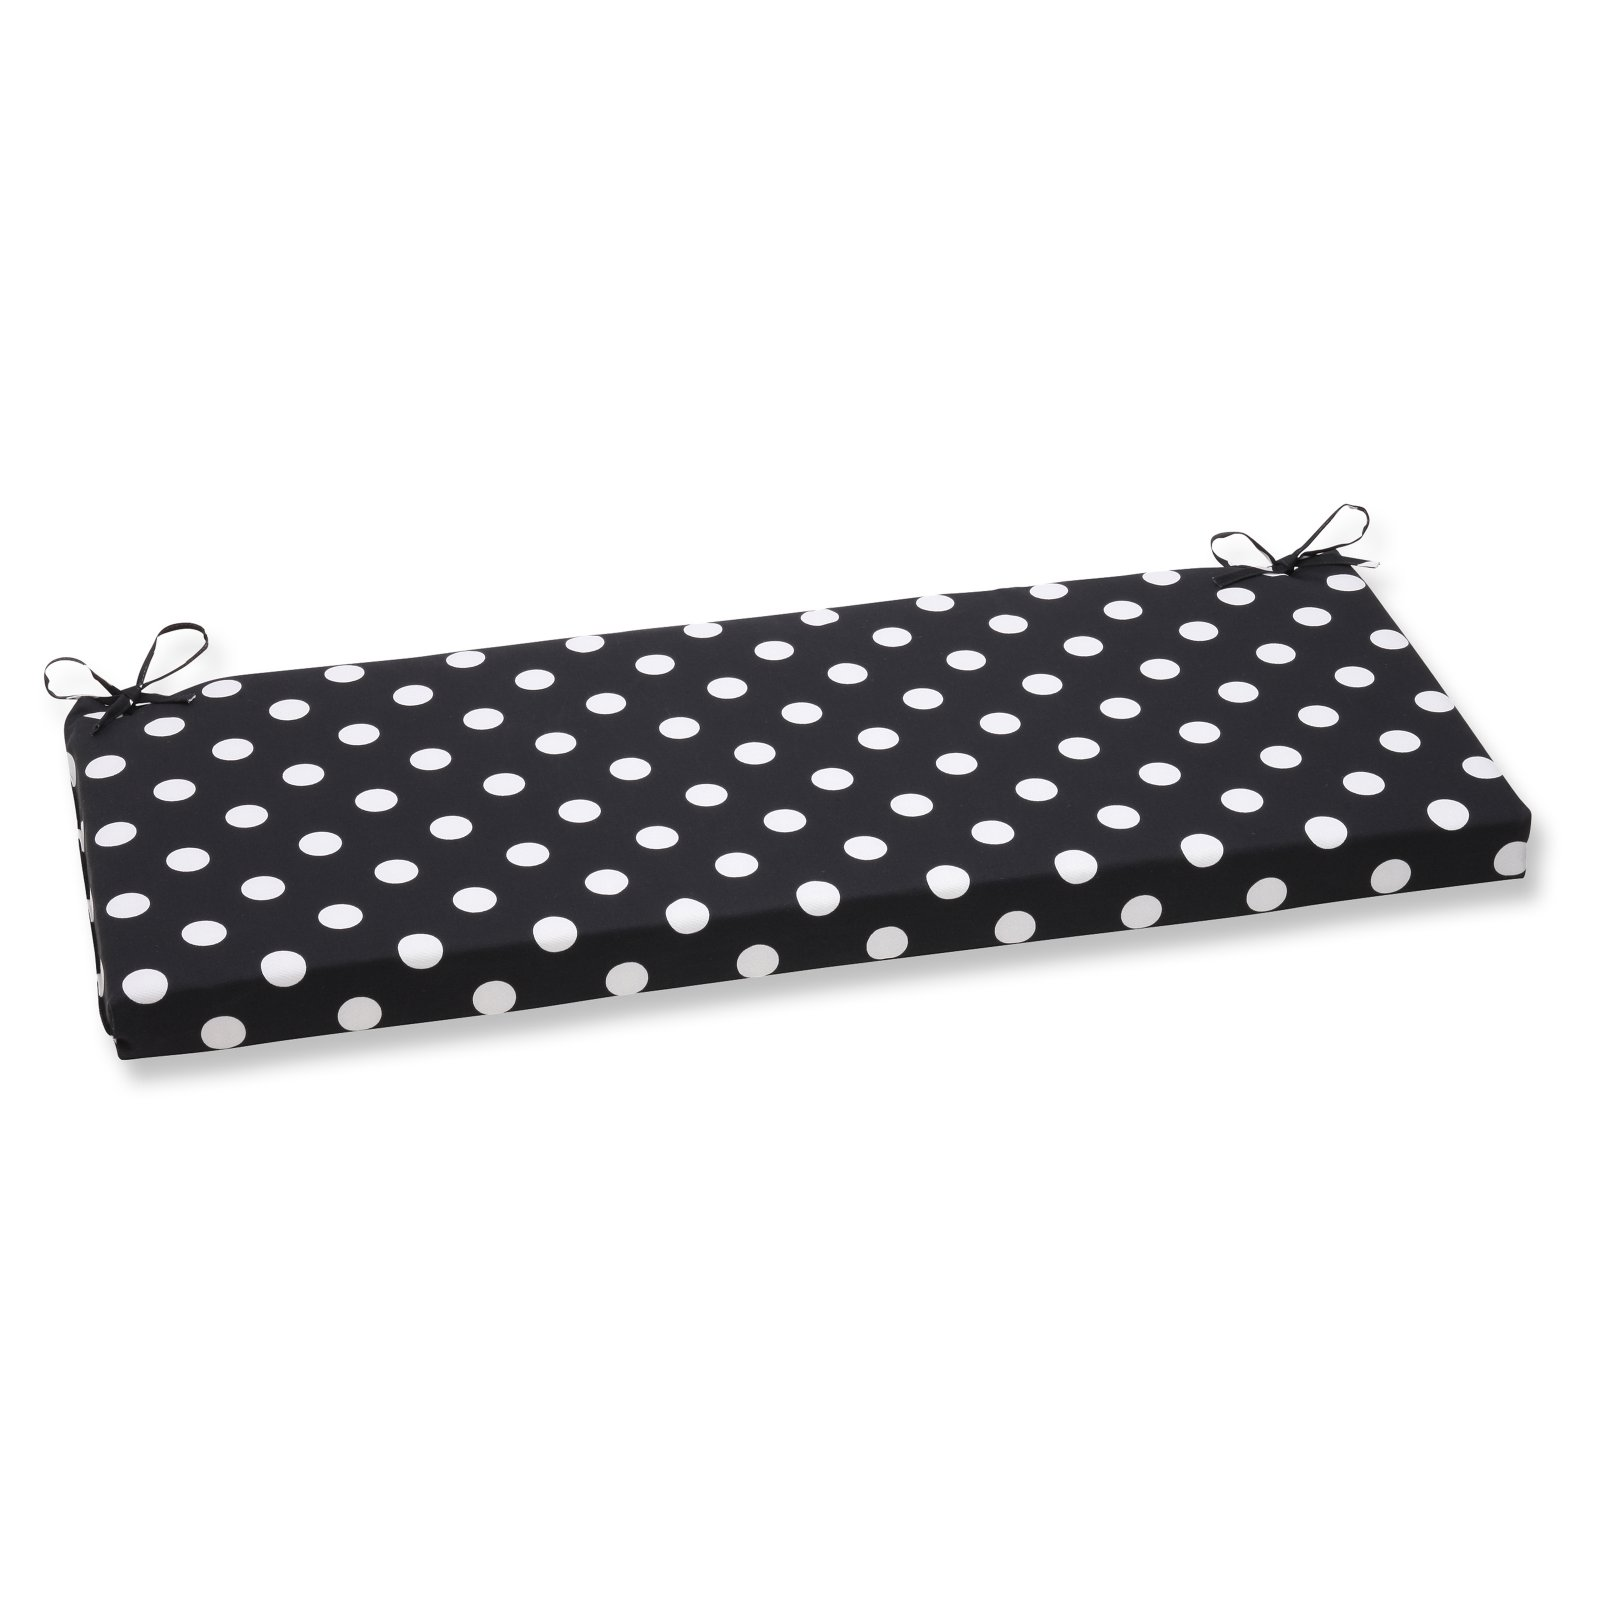 Pillow Perfect Outdoor/ Indoor Polka Dot Black Bench Cushion